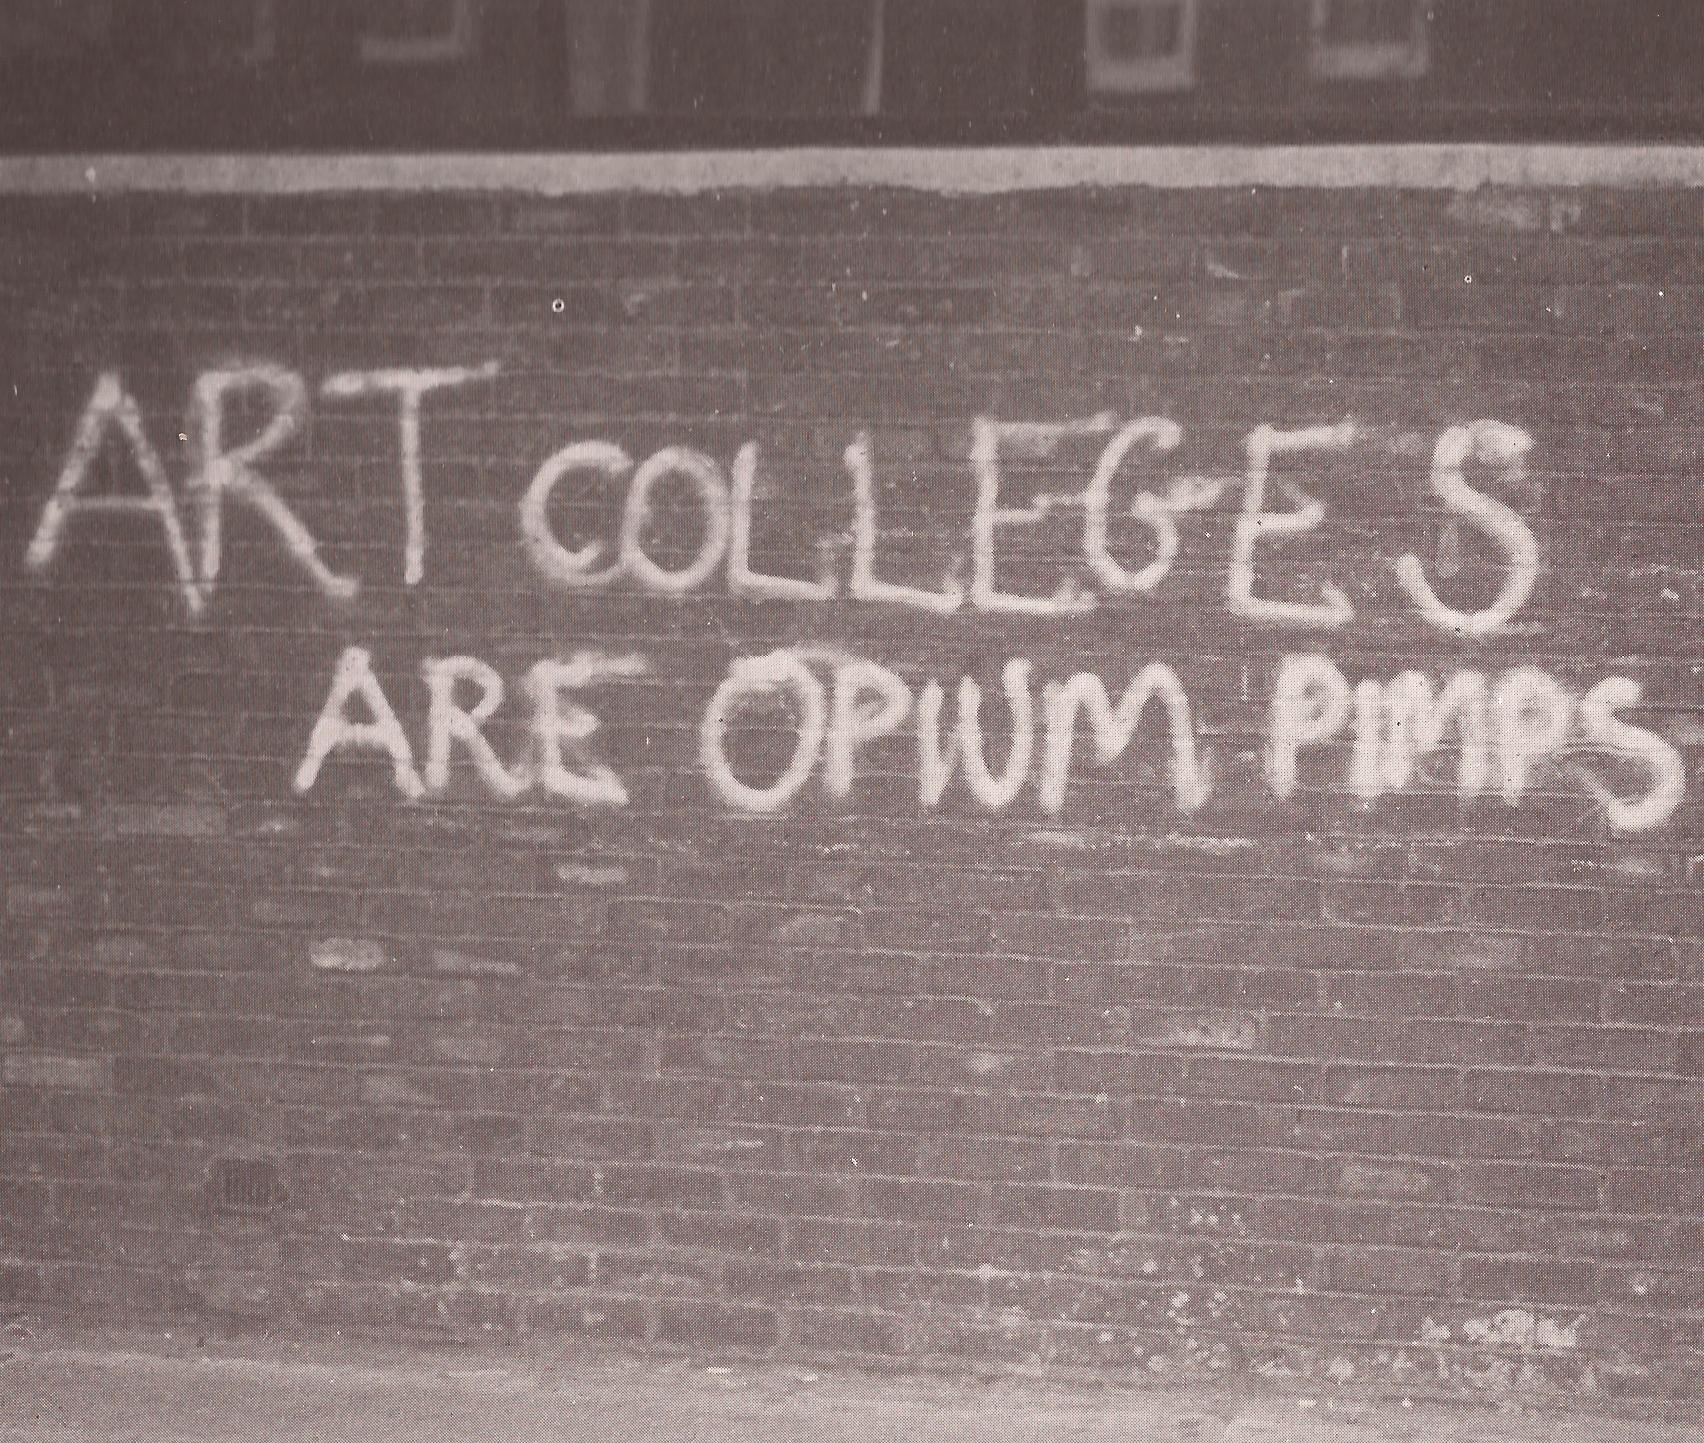 graffiti art colleges